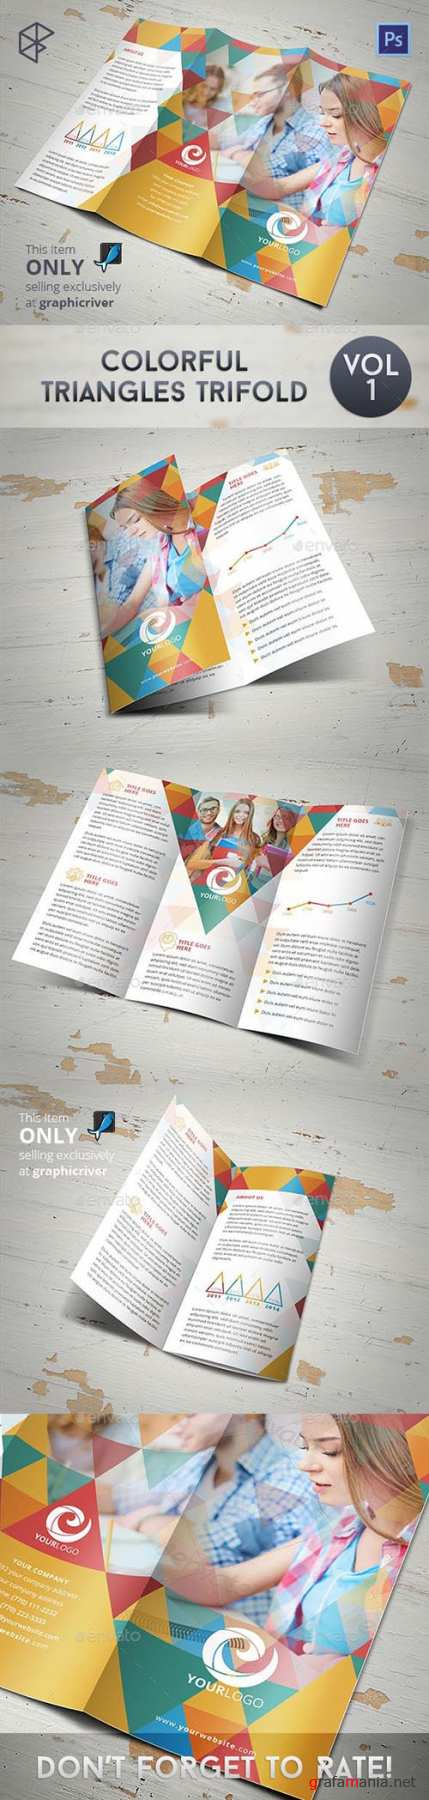 GR - Colorful Triangles Trifold 8067925